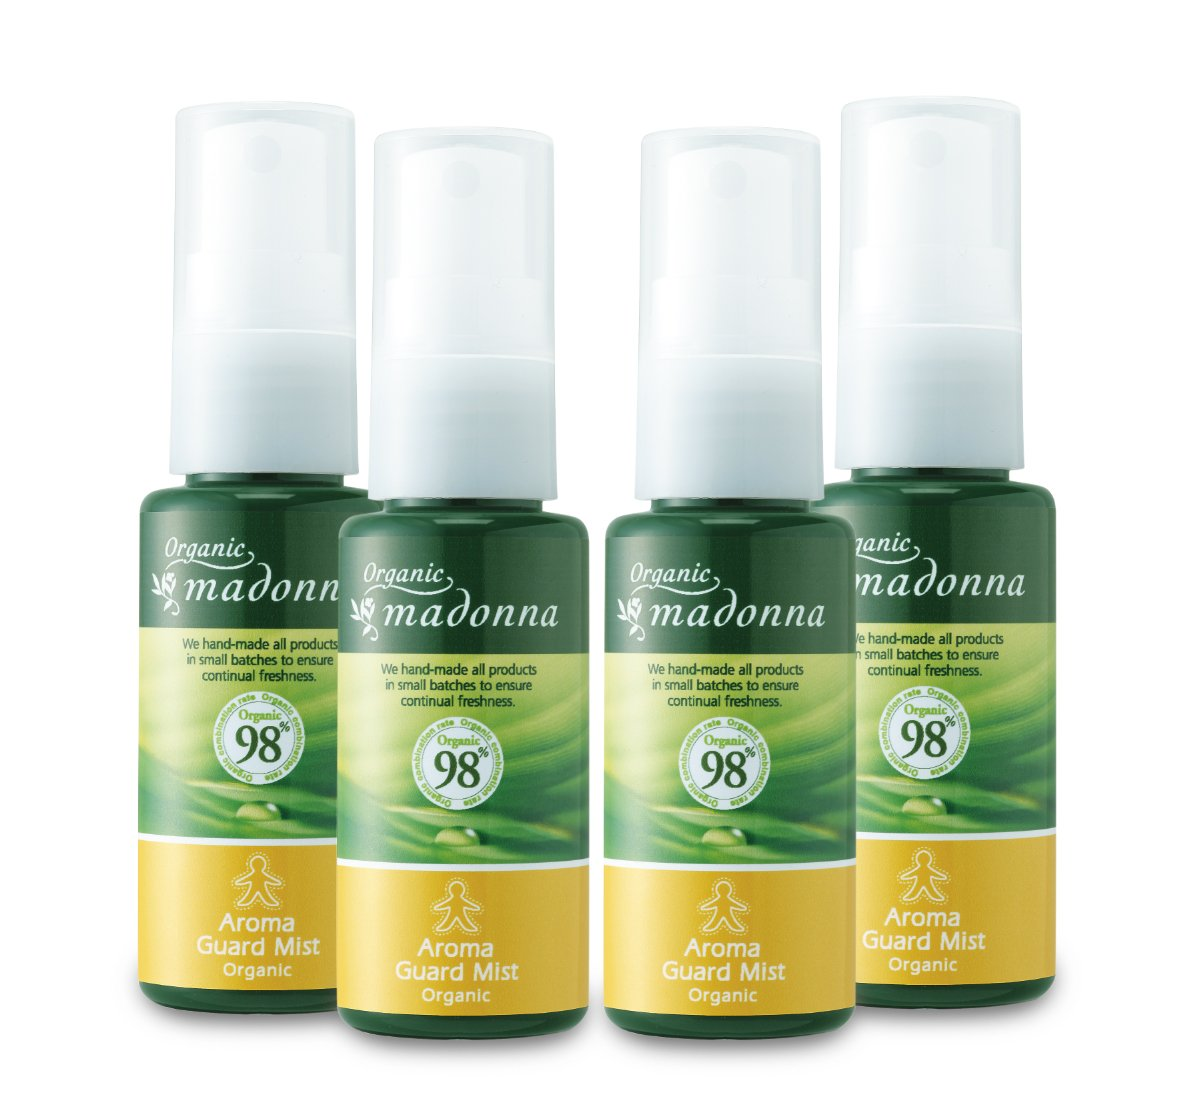 Organic Madonna aroma guard mist 35ml mini type ~ 4 pcs set (by 100% insect natural ingredients only aroma mist)